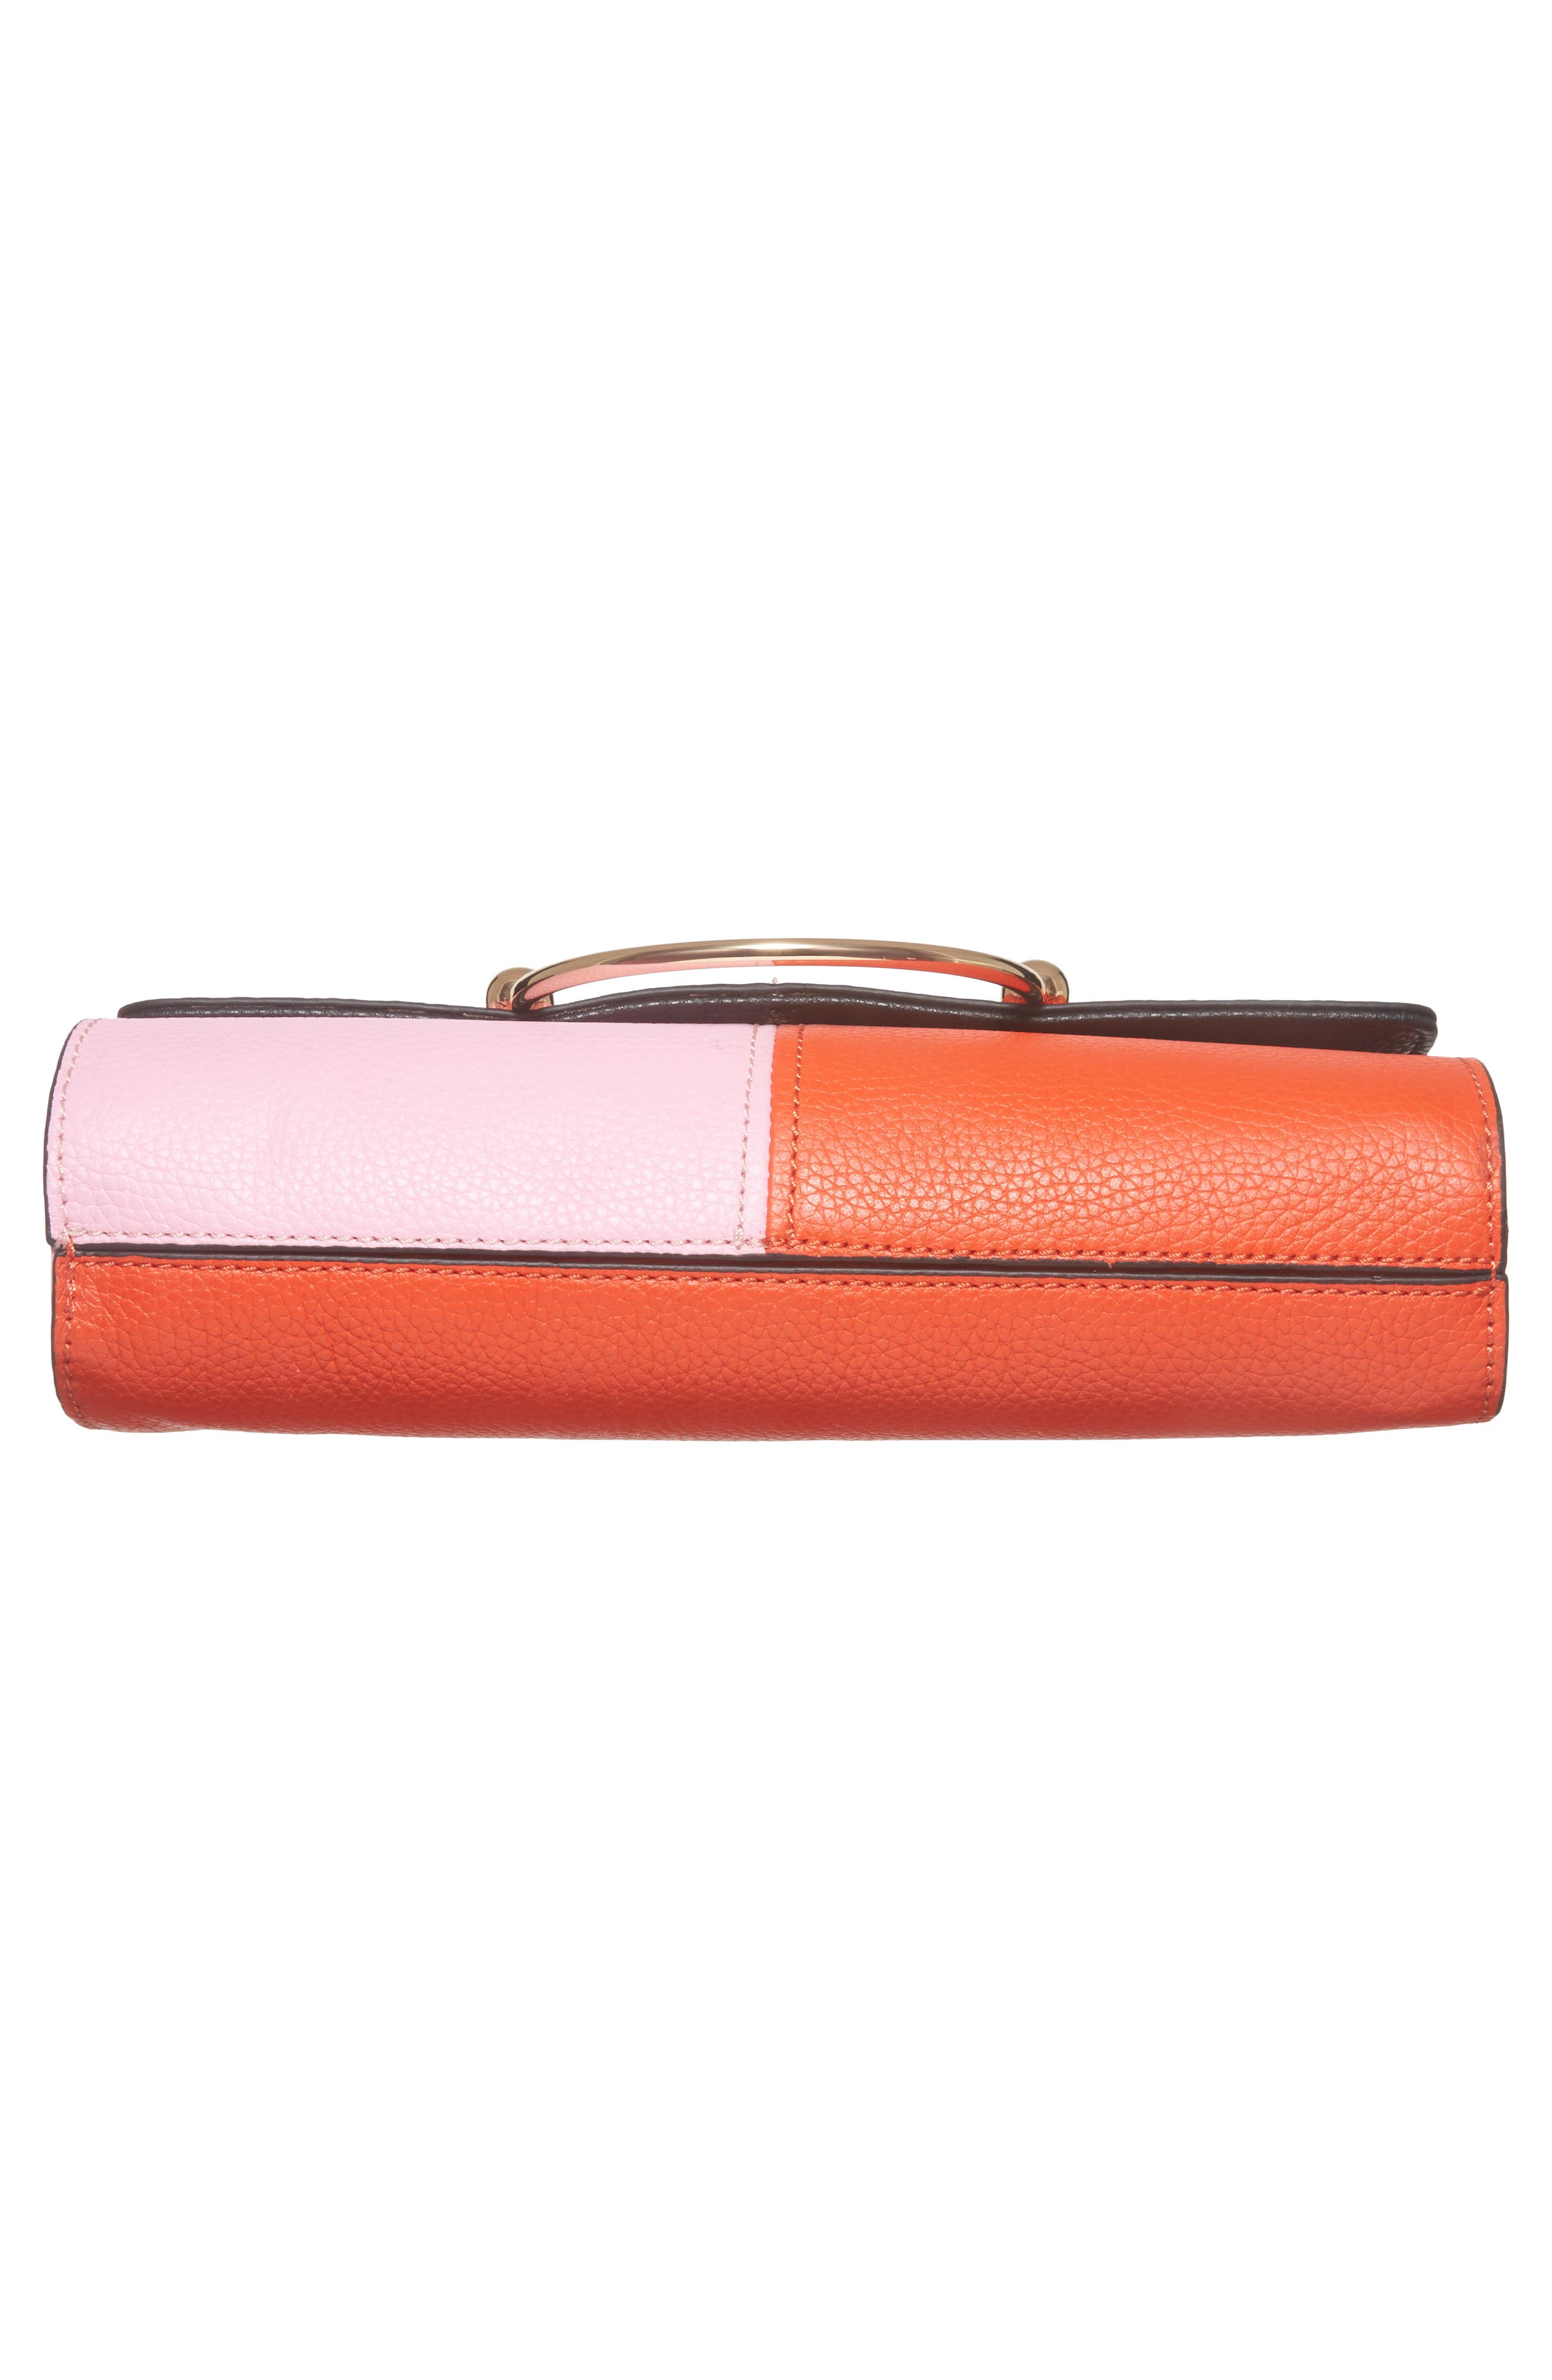 Astor Pebbled Leather Flap Clutch,                             Alternate thumbnail 24, color,